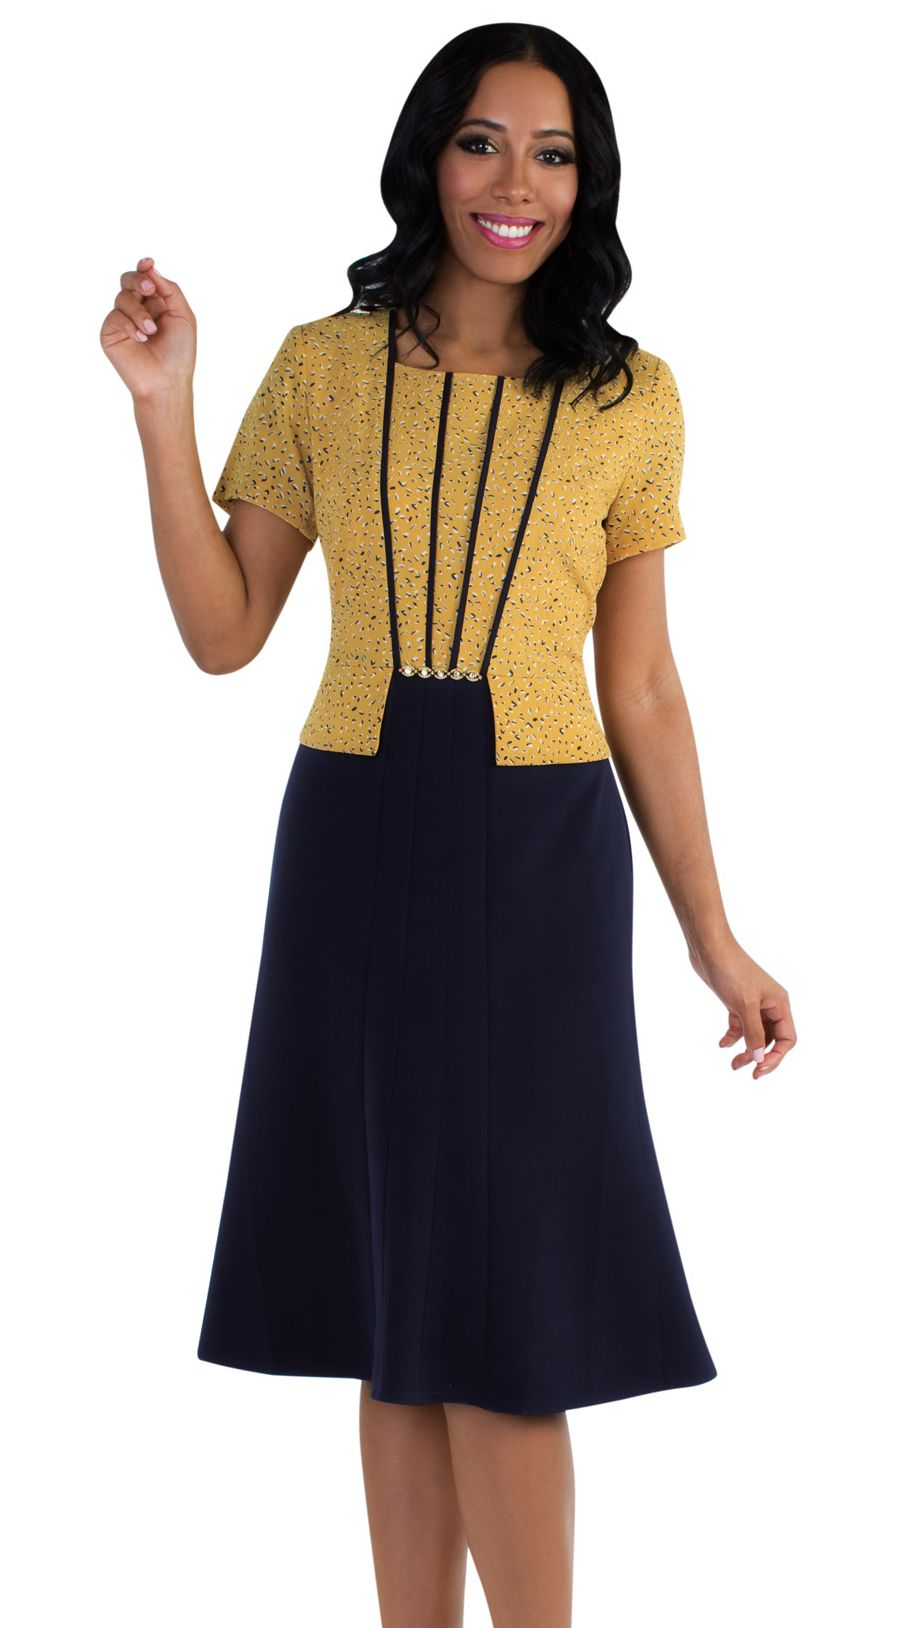 Tally Taylor Dress 9445-Yellow/Navy - Church Suits For Less